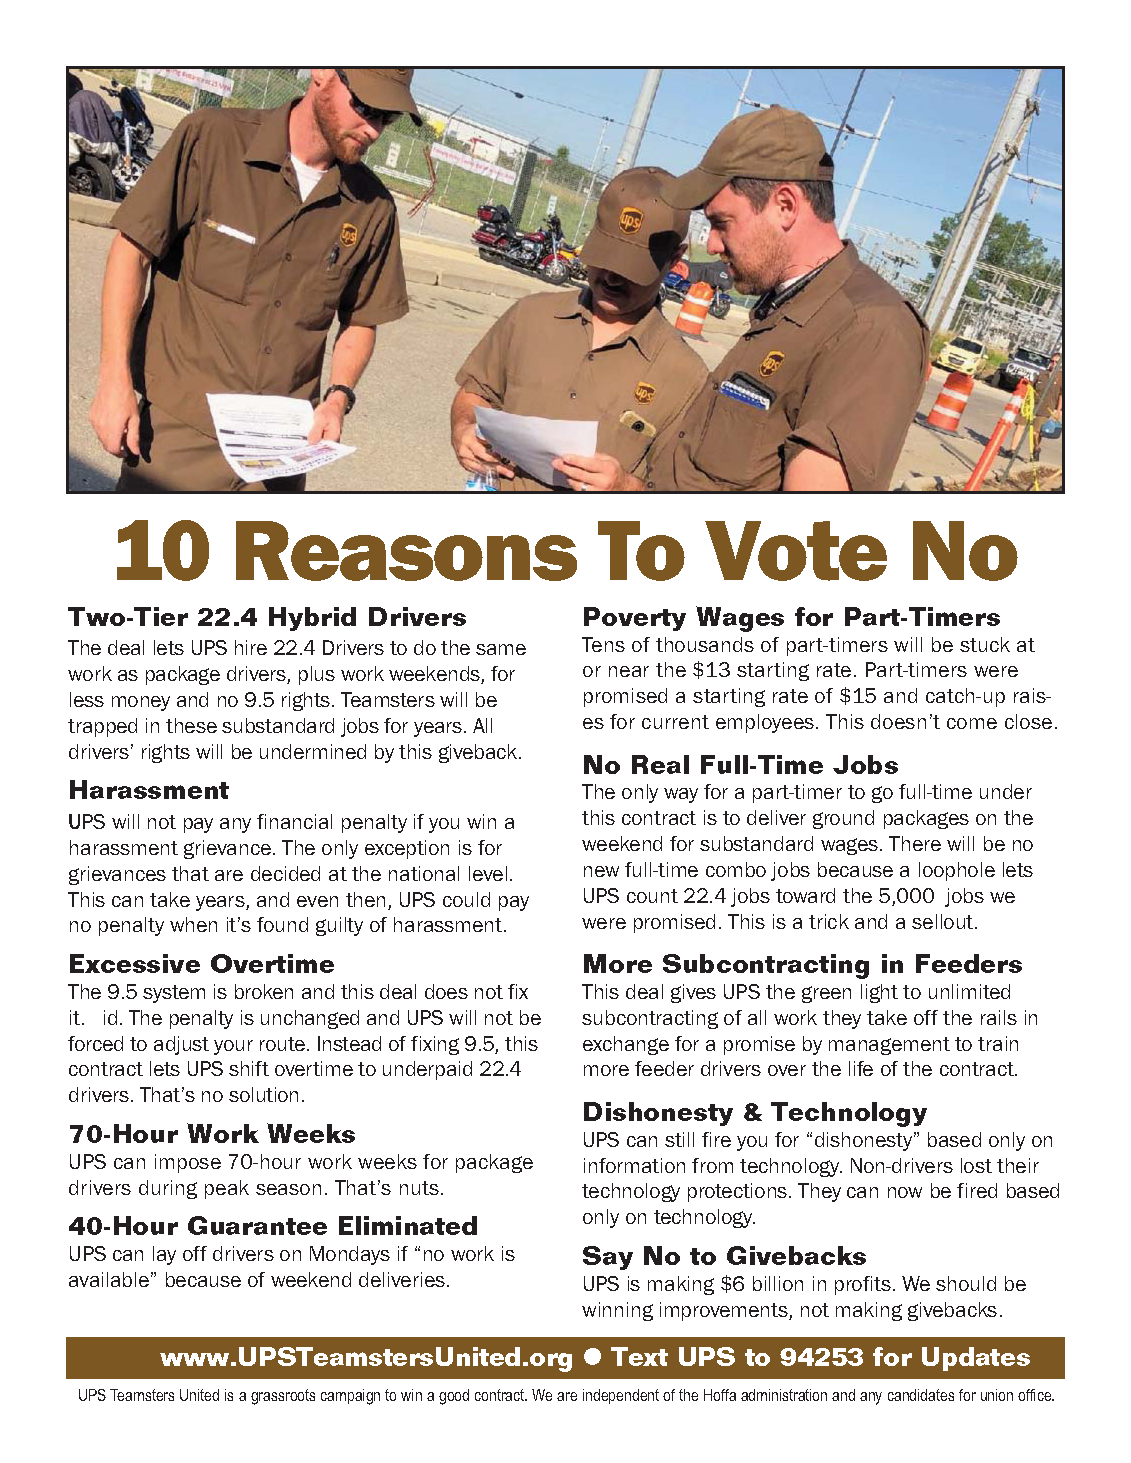 10-reasons-to-vote-no.png